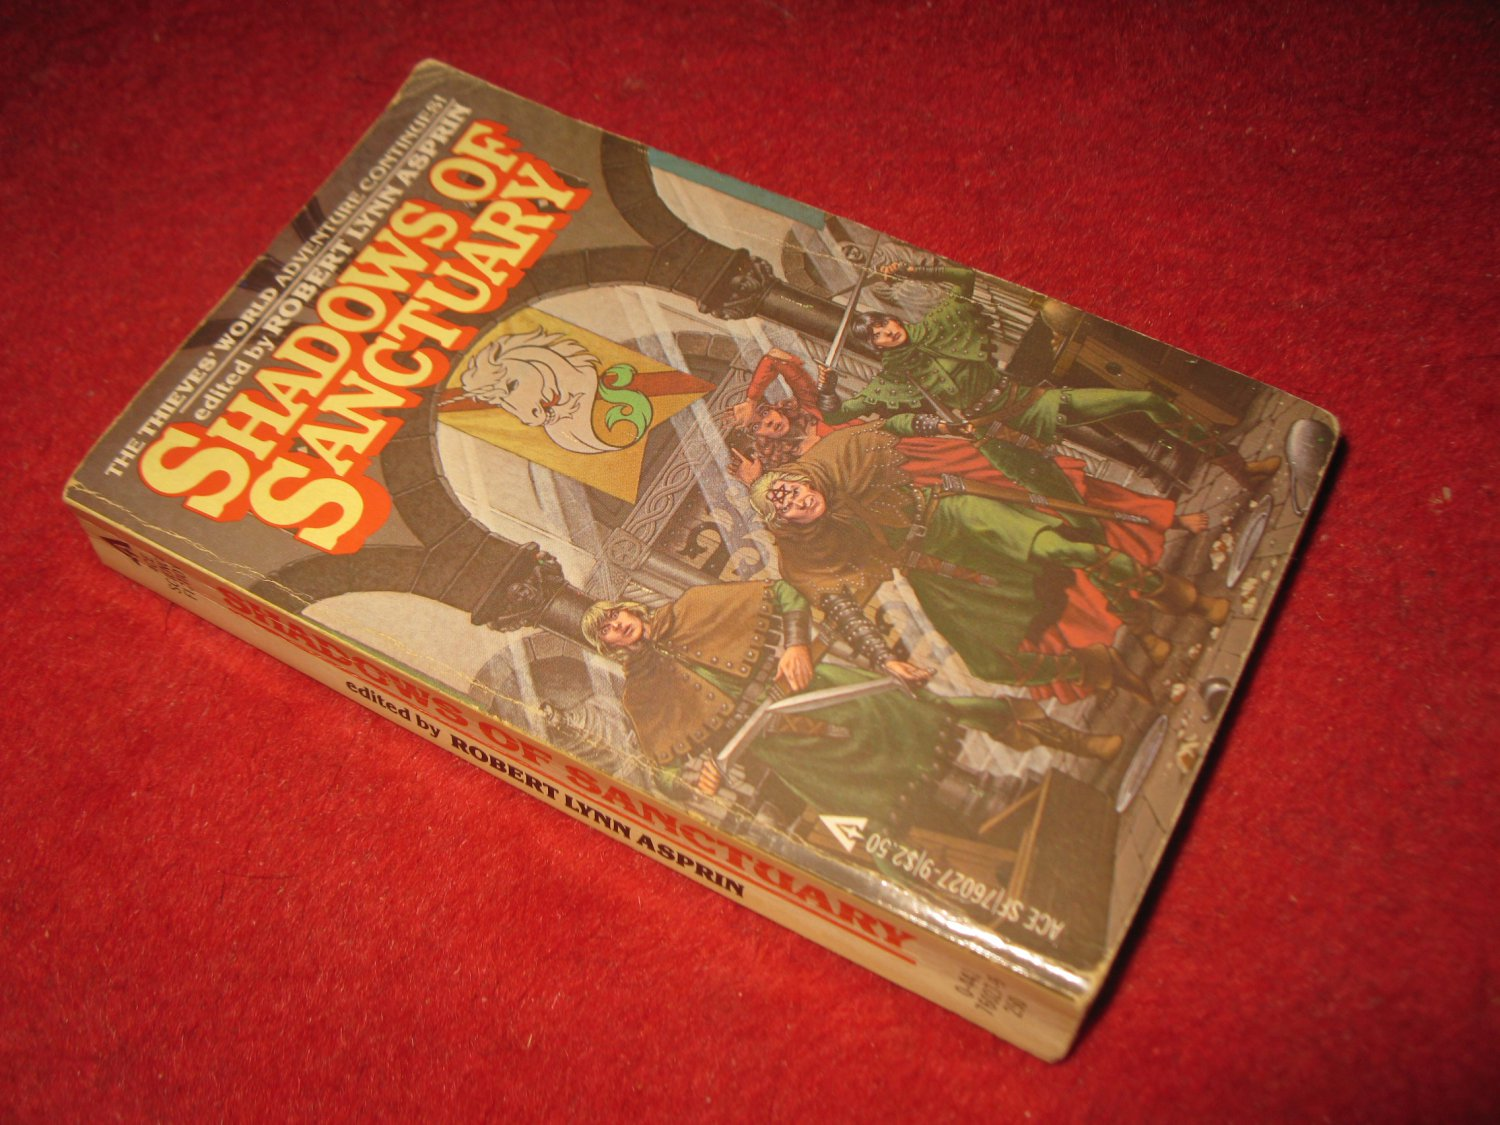 1981 Shadows of Sanctuary (after thieves world #3) - by Robert Lynn Asprin - Ace books - paperback